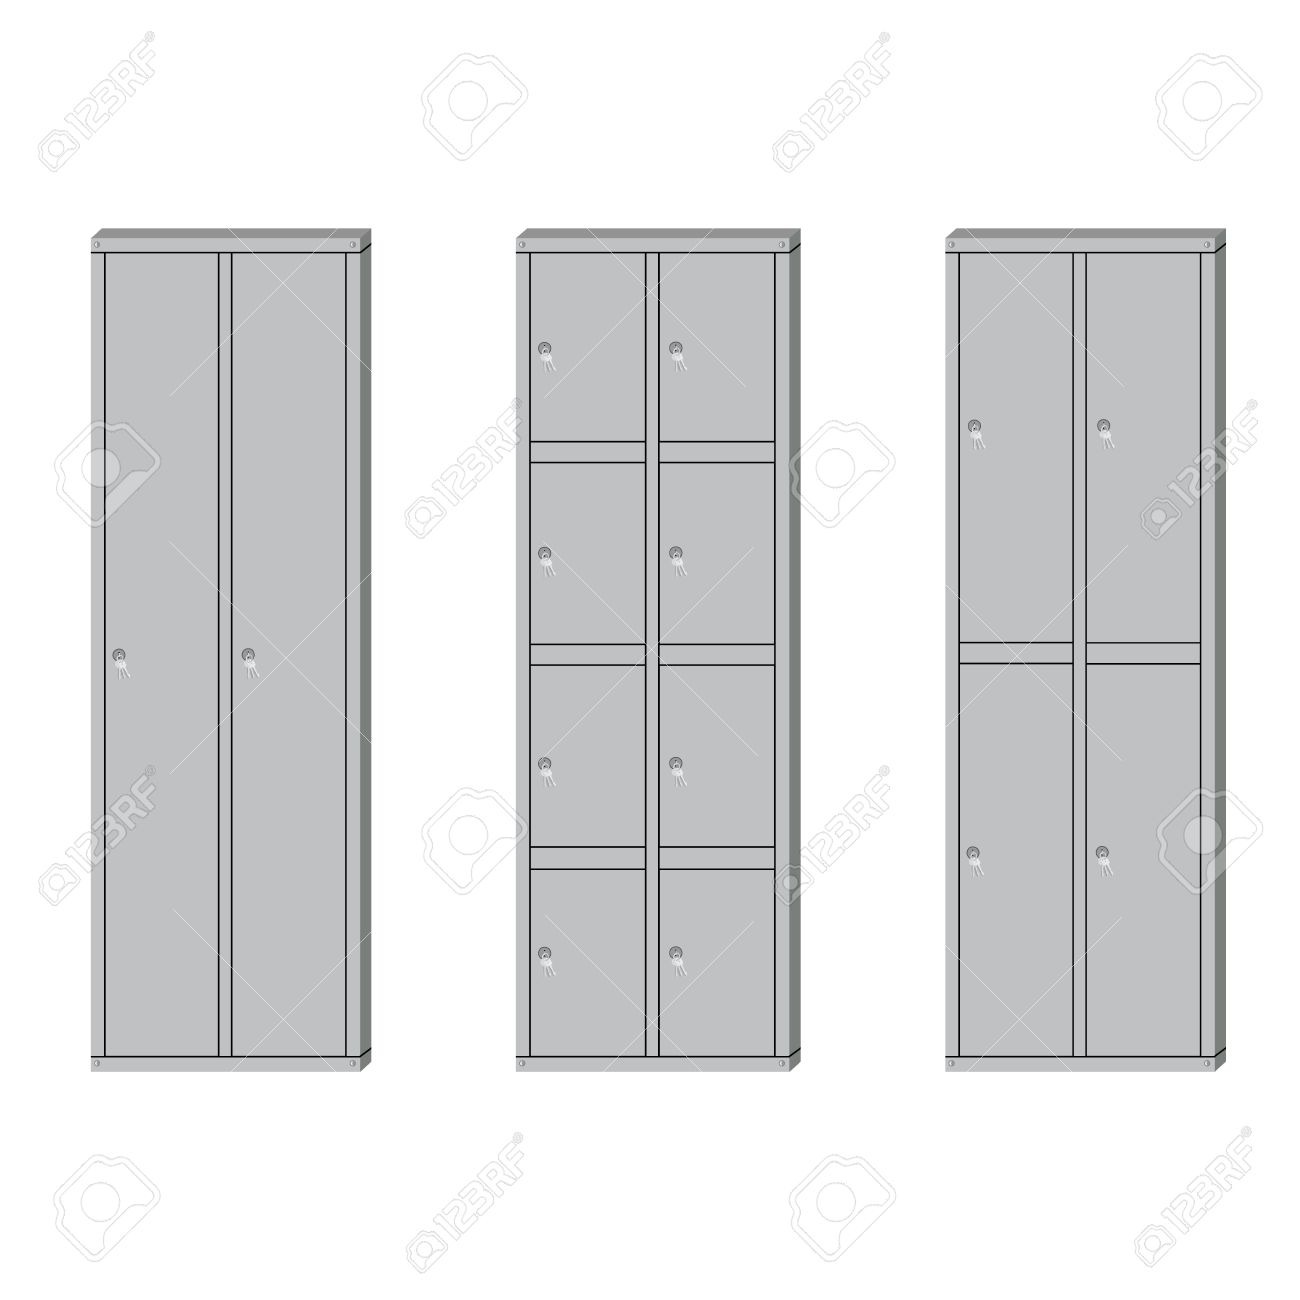 Illustration Set Of Metal School Sport Lockers. Gym Locker. Locker Door.  Deposit Lockers